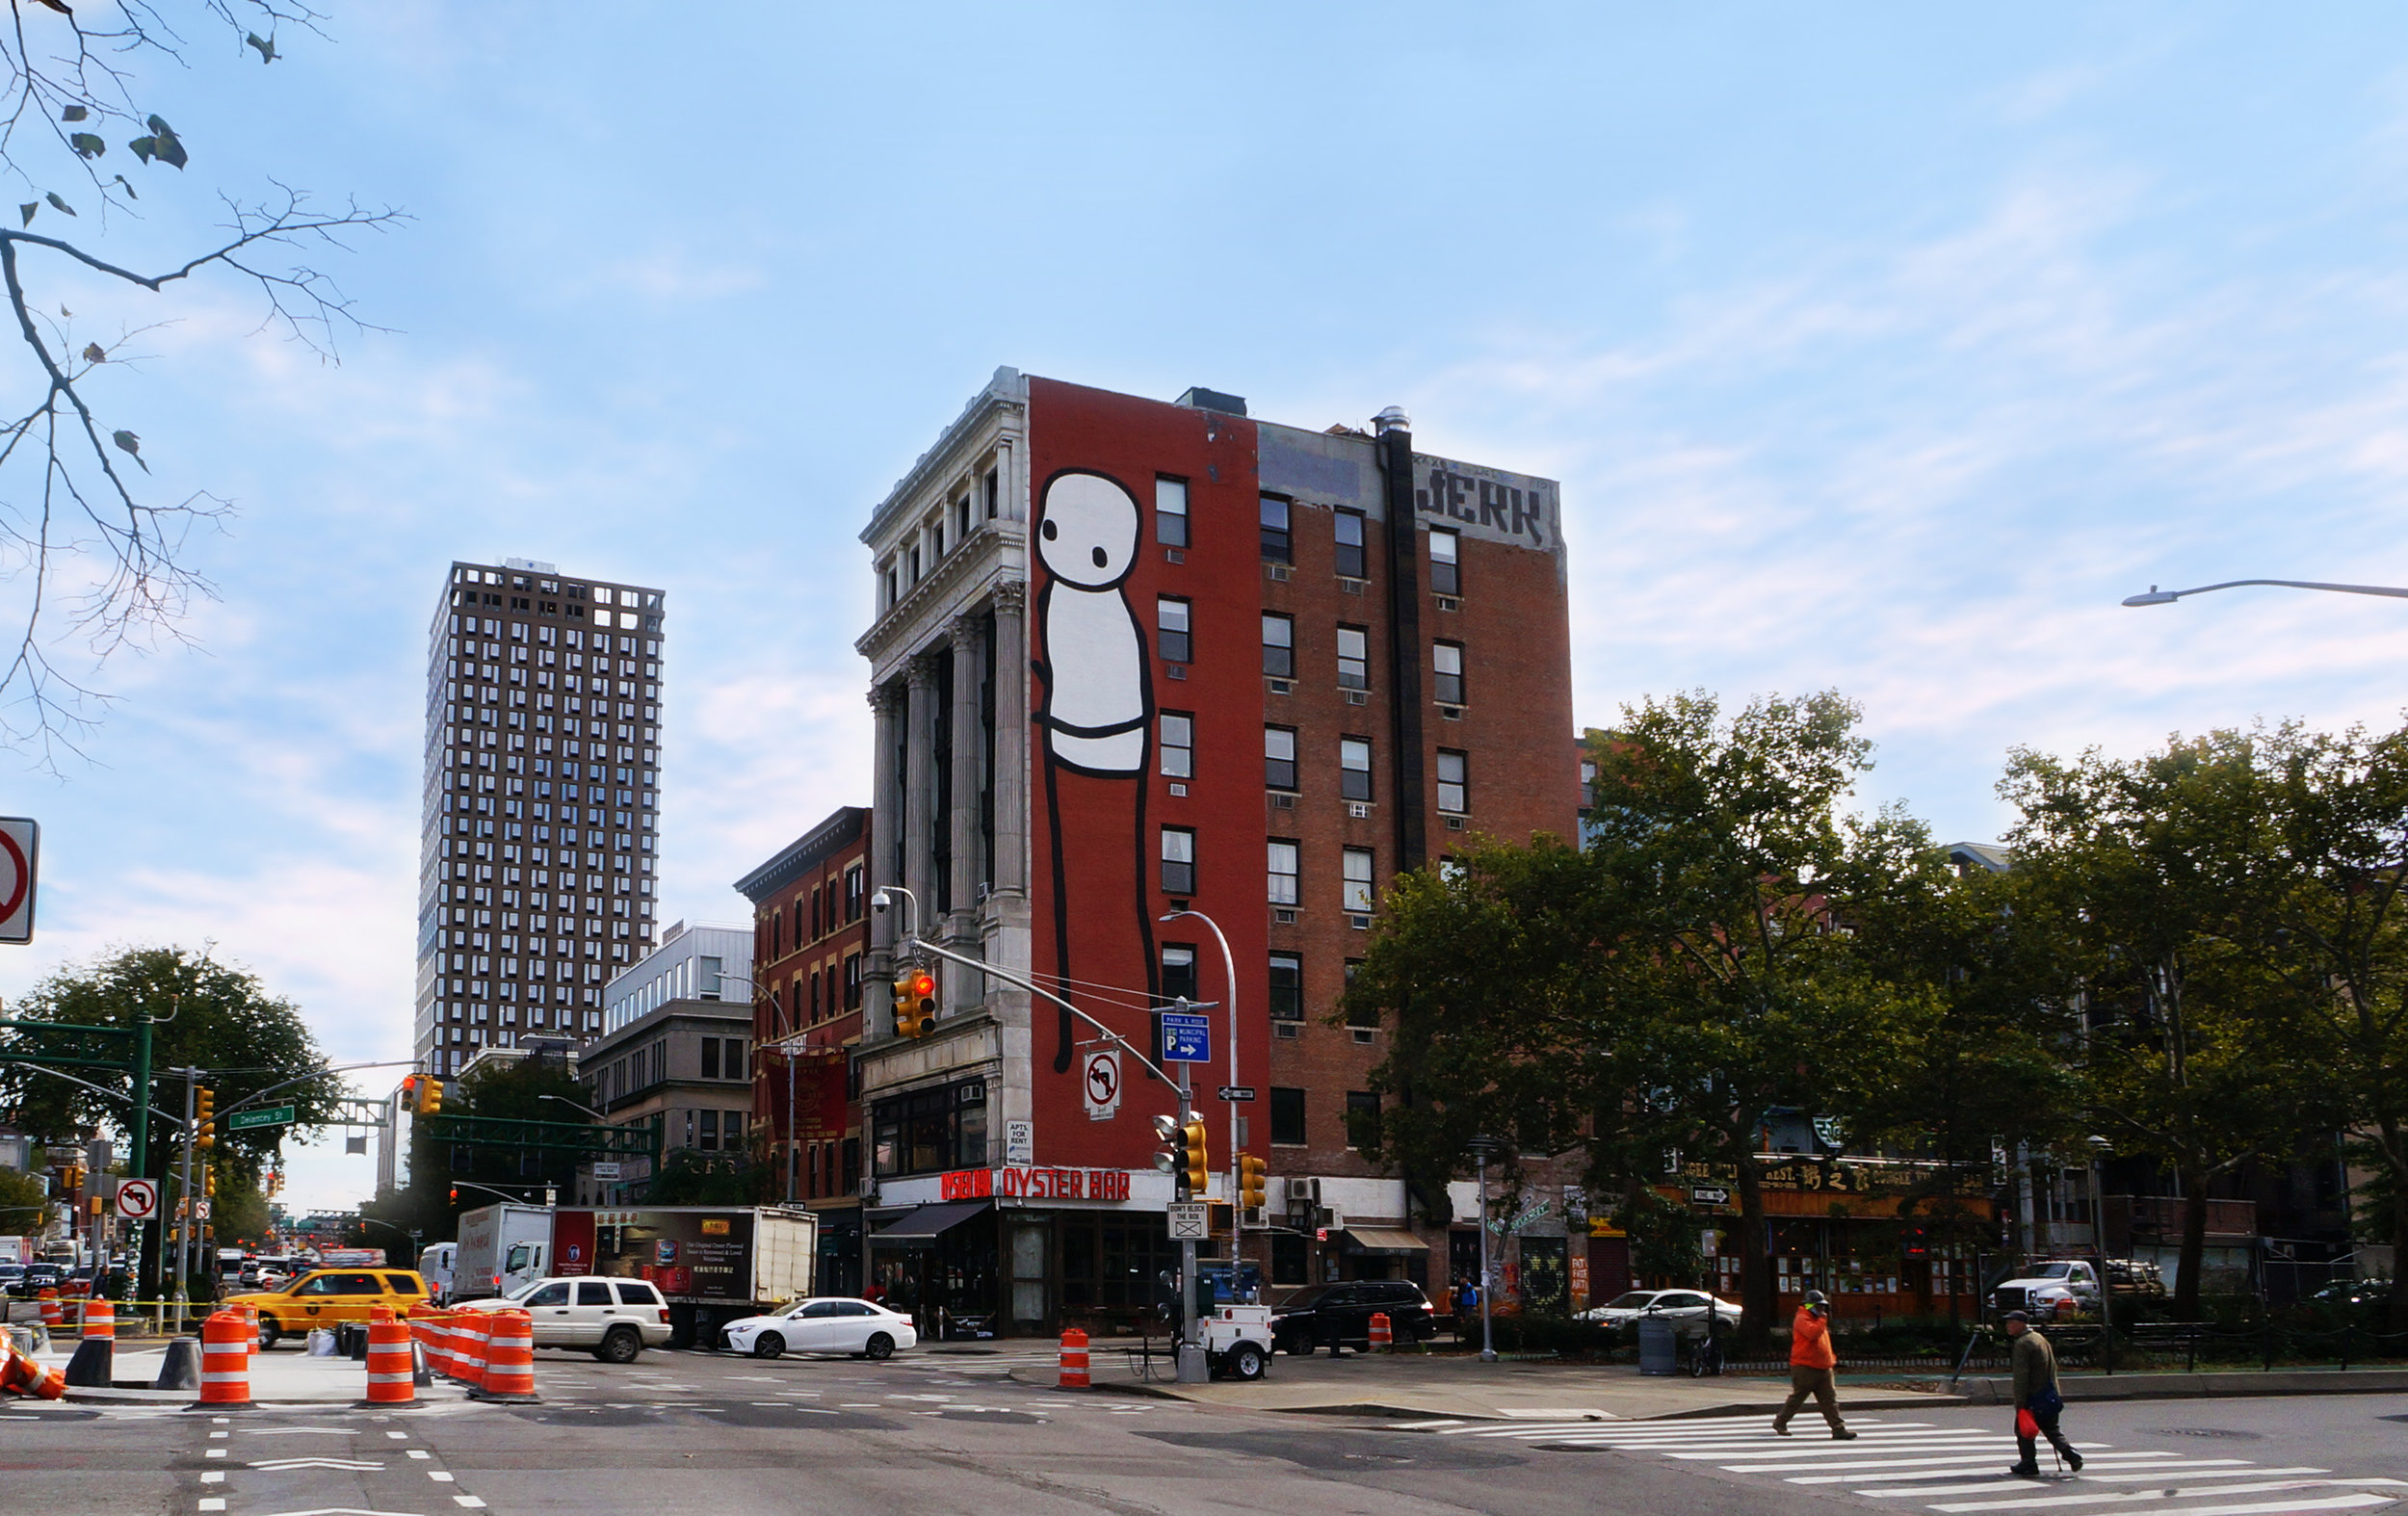 Longines Realty, Inc. - Commercial Real Estate Lease Listing: 51-53 Delancey, Chinatown, Lower East Side, NYC